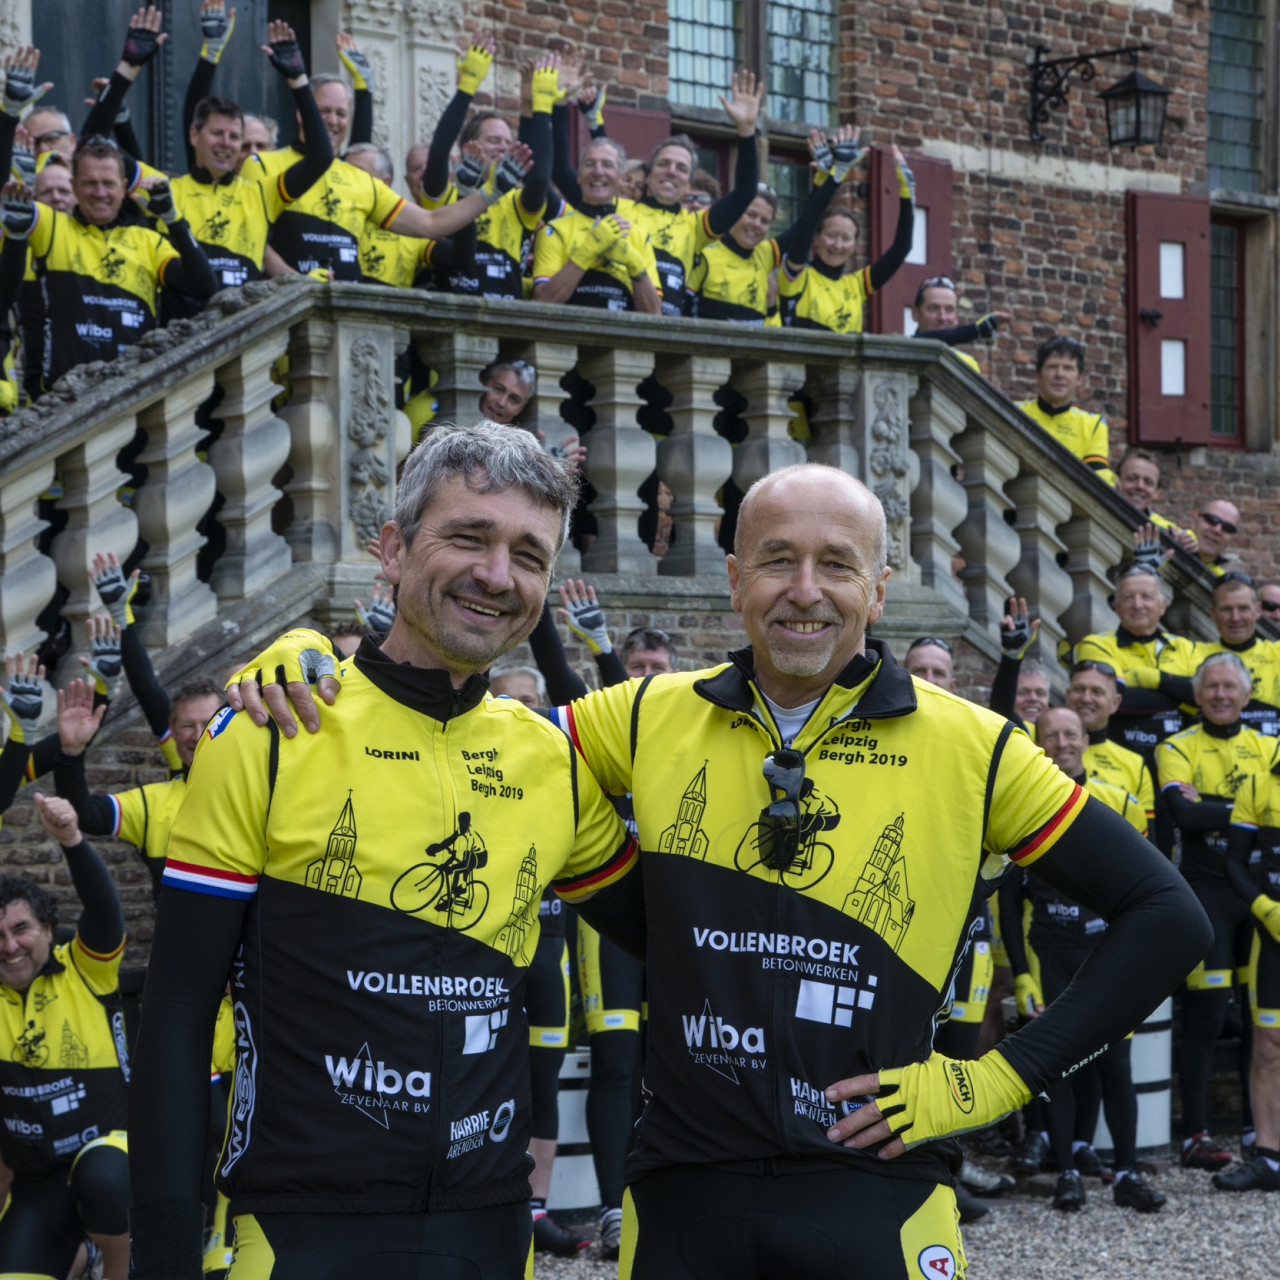 Researchers cycle 1.365 kilometers against ALL